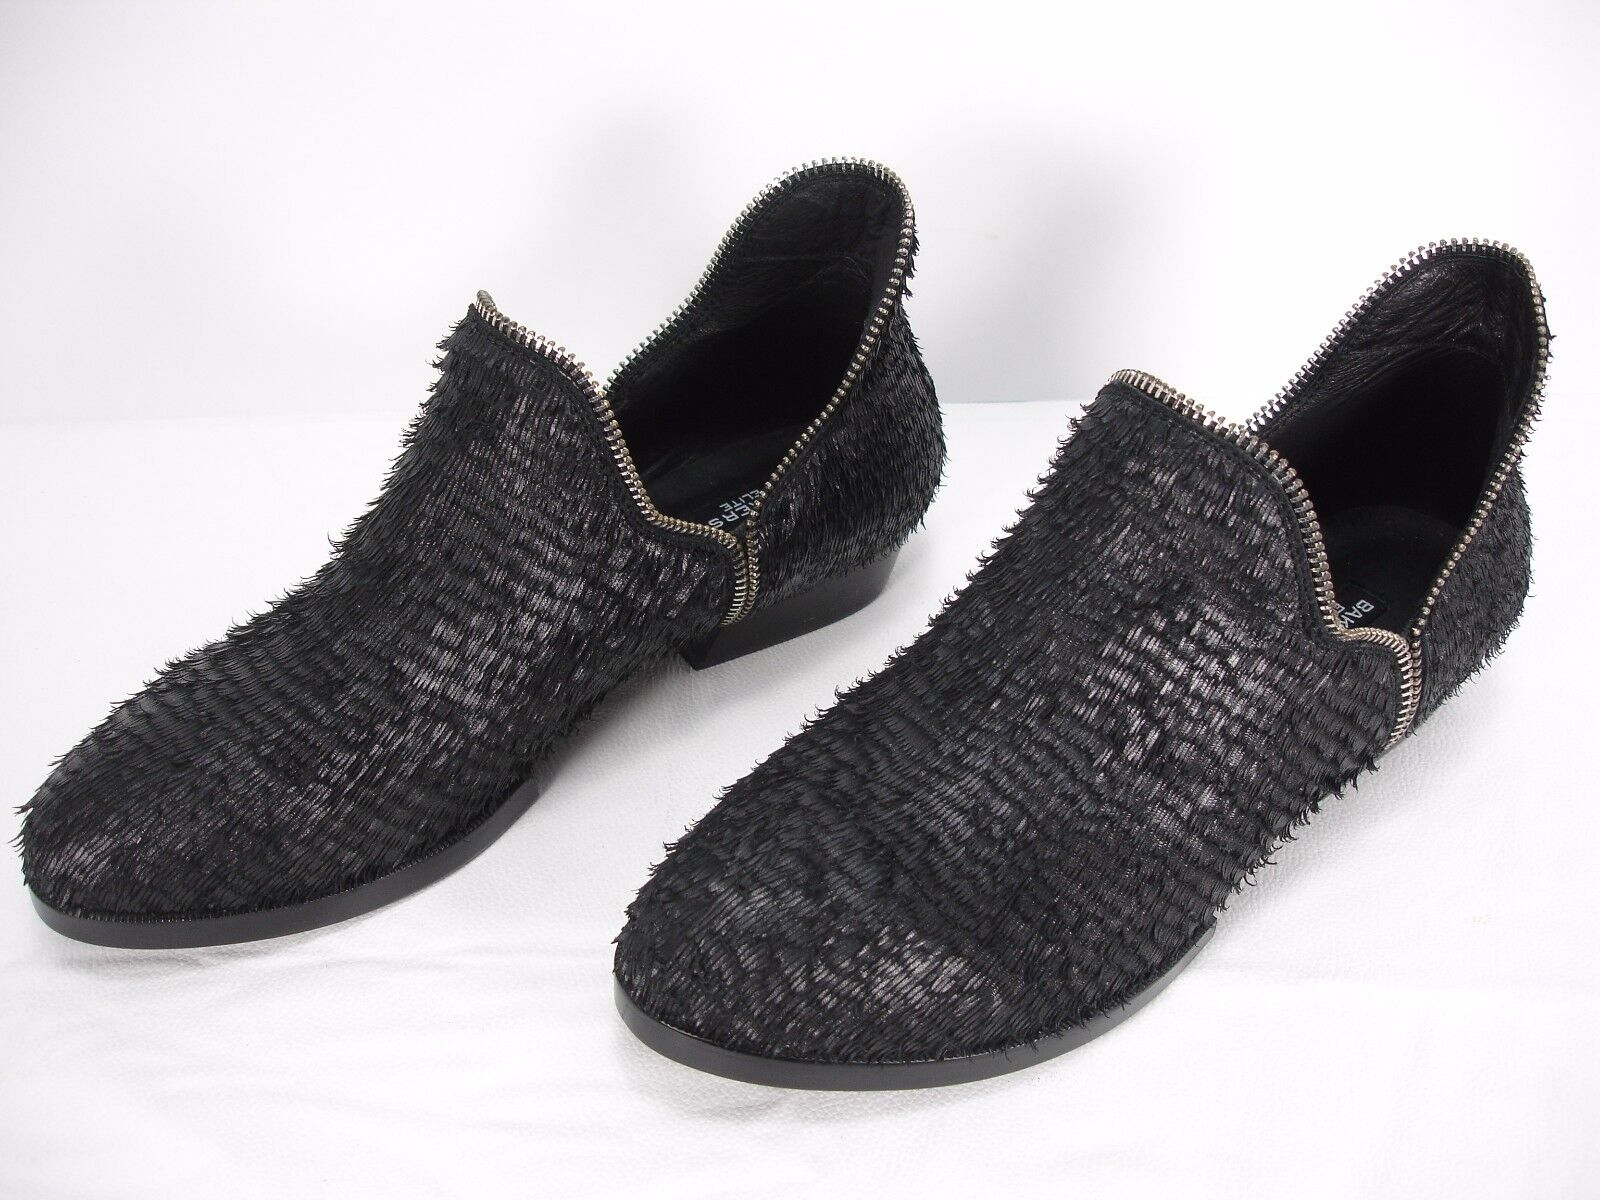 NEW BAKERS ELITE SETTLE FRAYED LEATHER ZIPPER DETAIL BOOTIES SHOES WOMEN'S 39